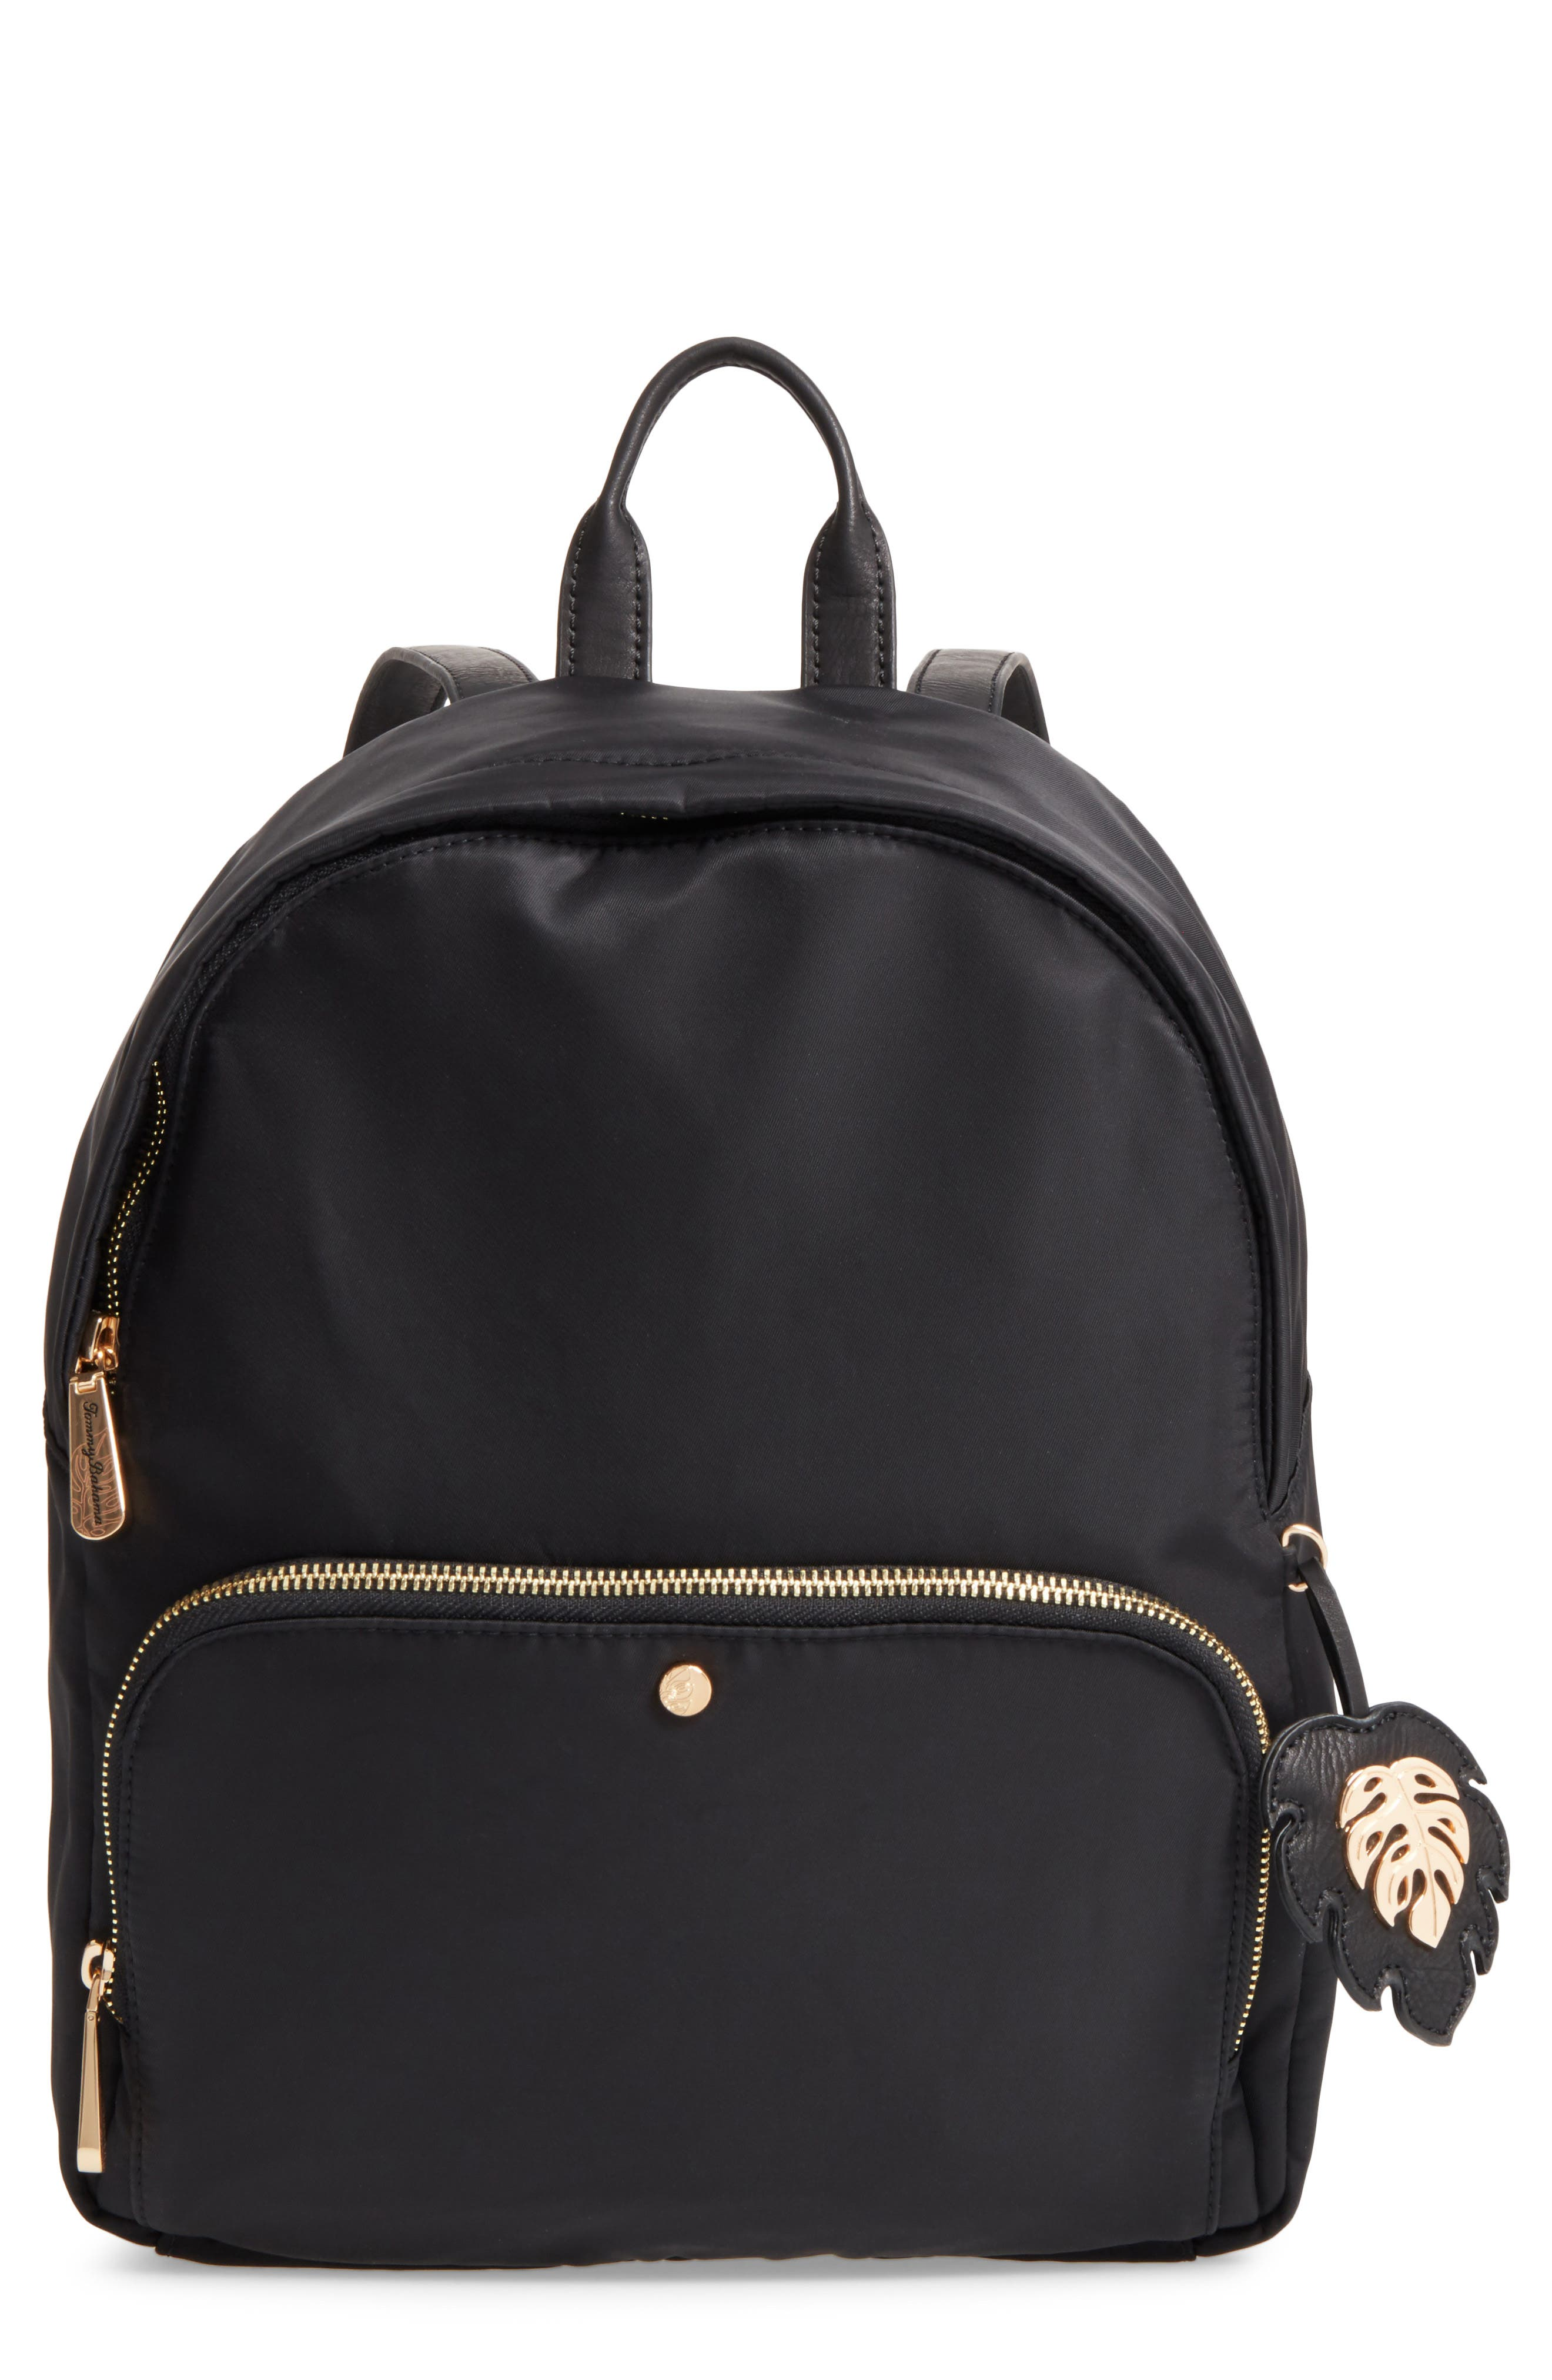 SIESTA KEY BACKPACK - BLACK